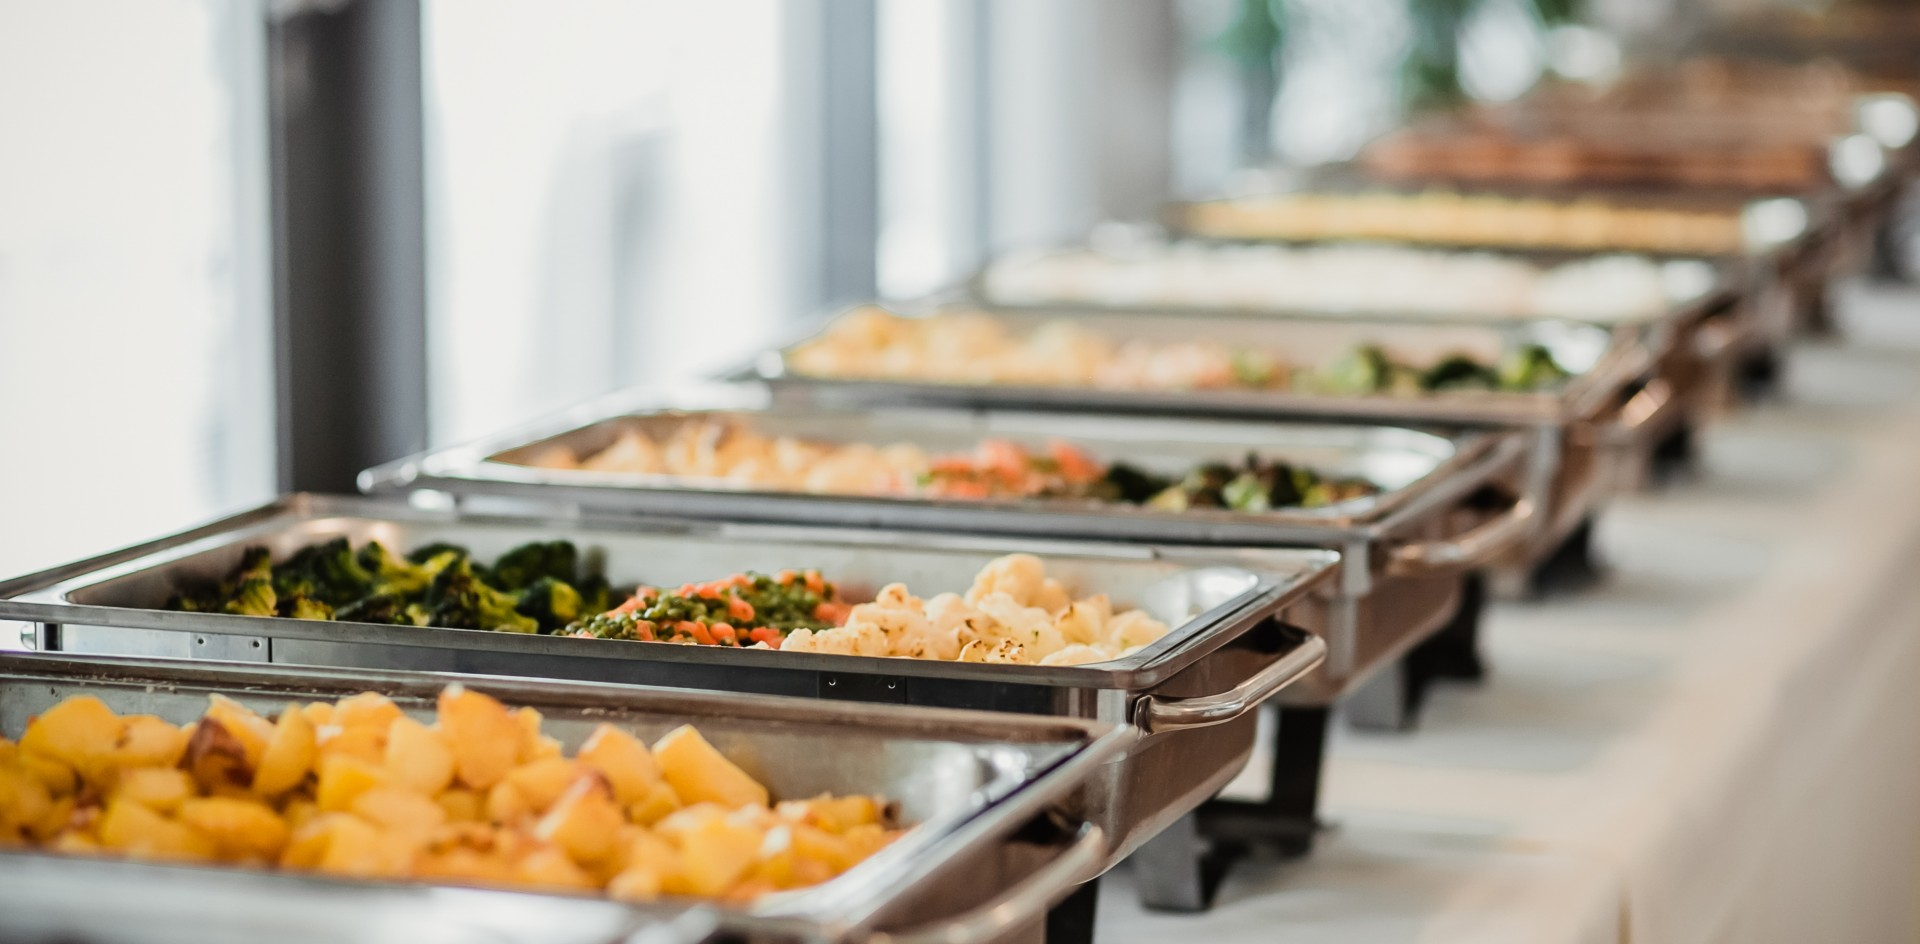 Yls catering services one of the best catering in town for Best catering services